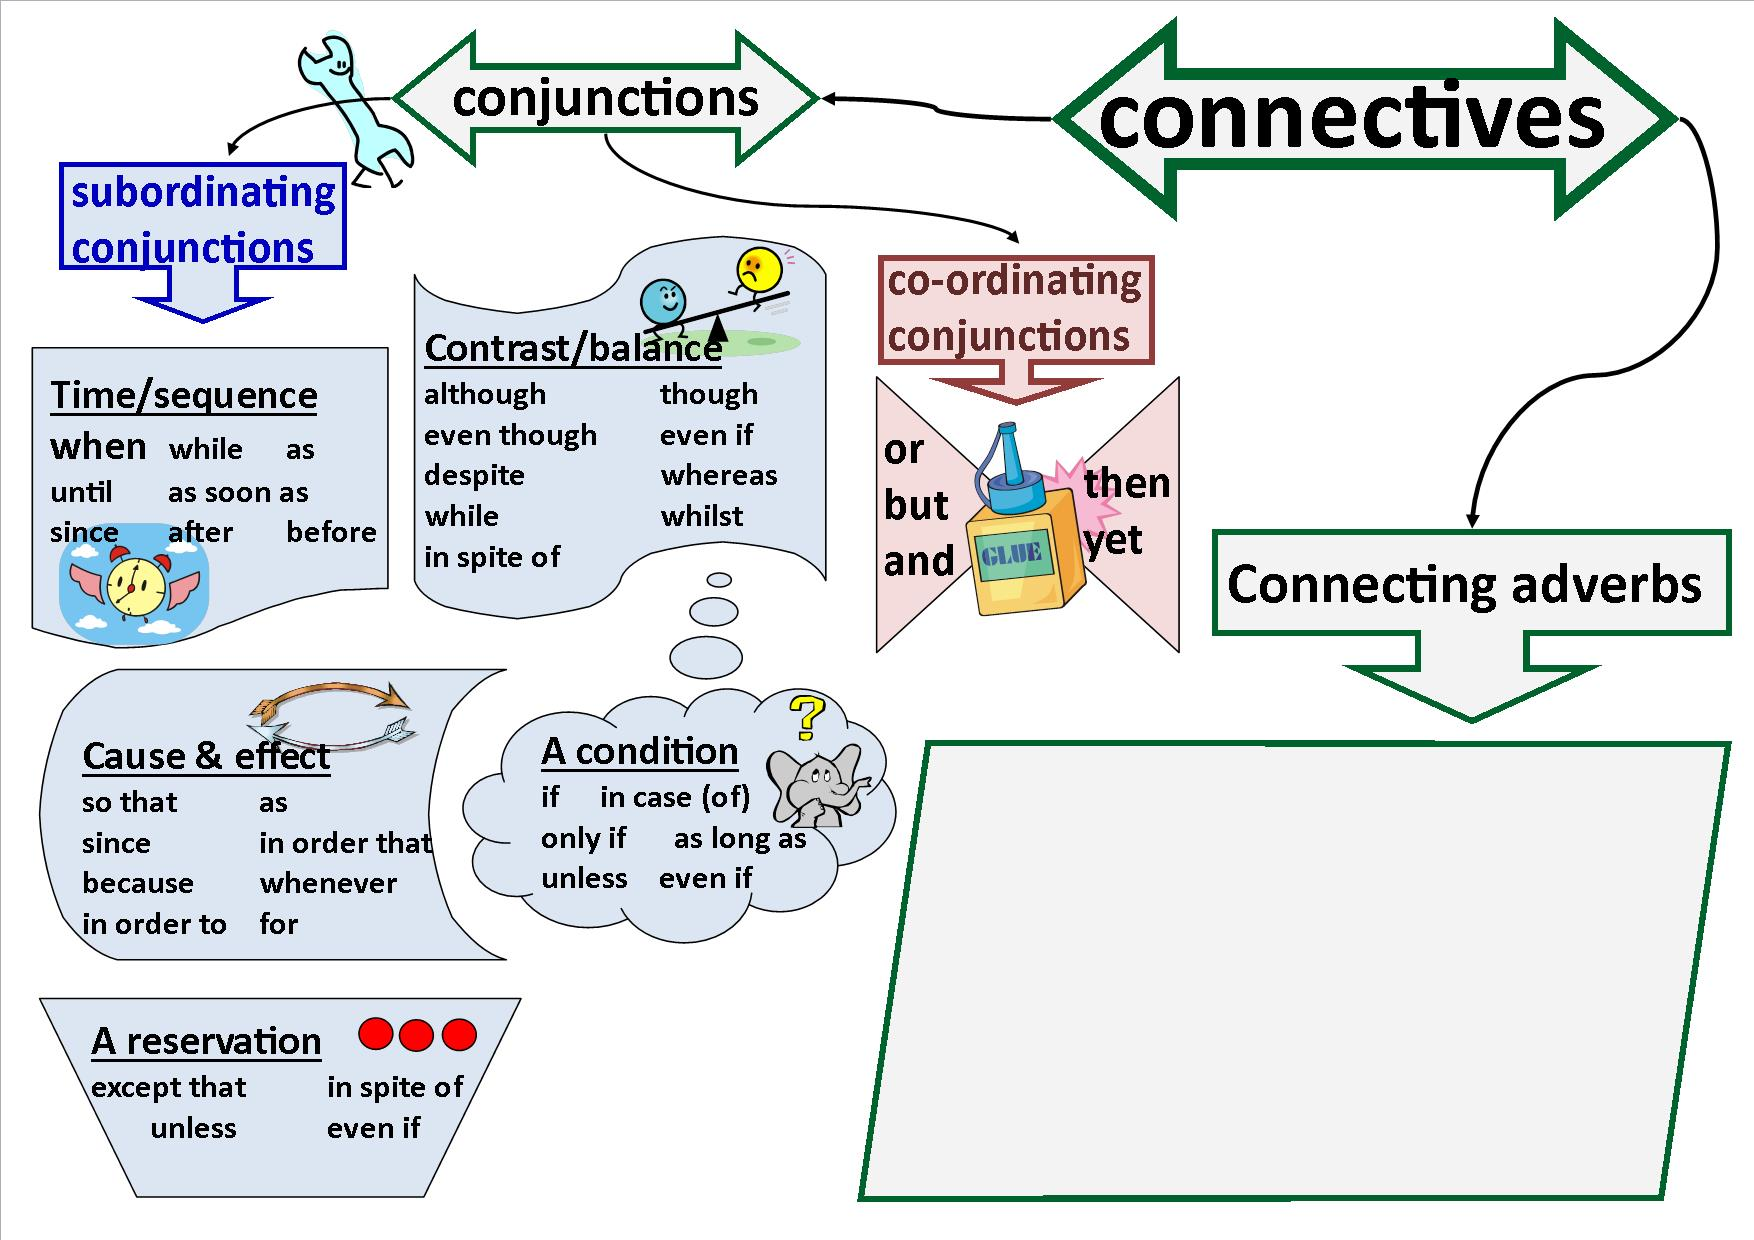 Connectives & Conjunctions poster